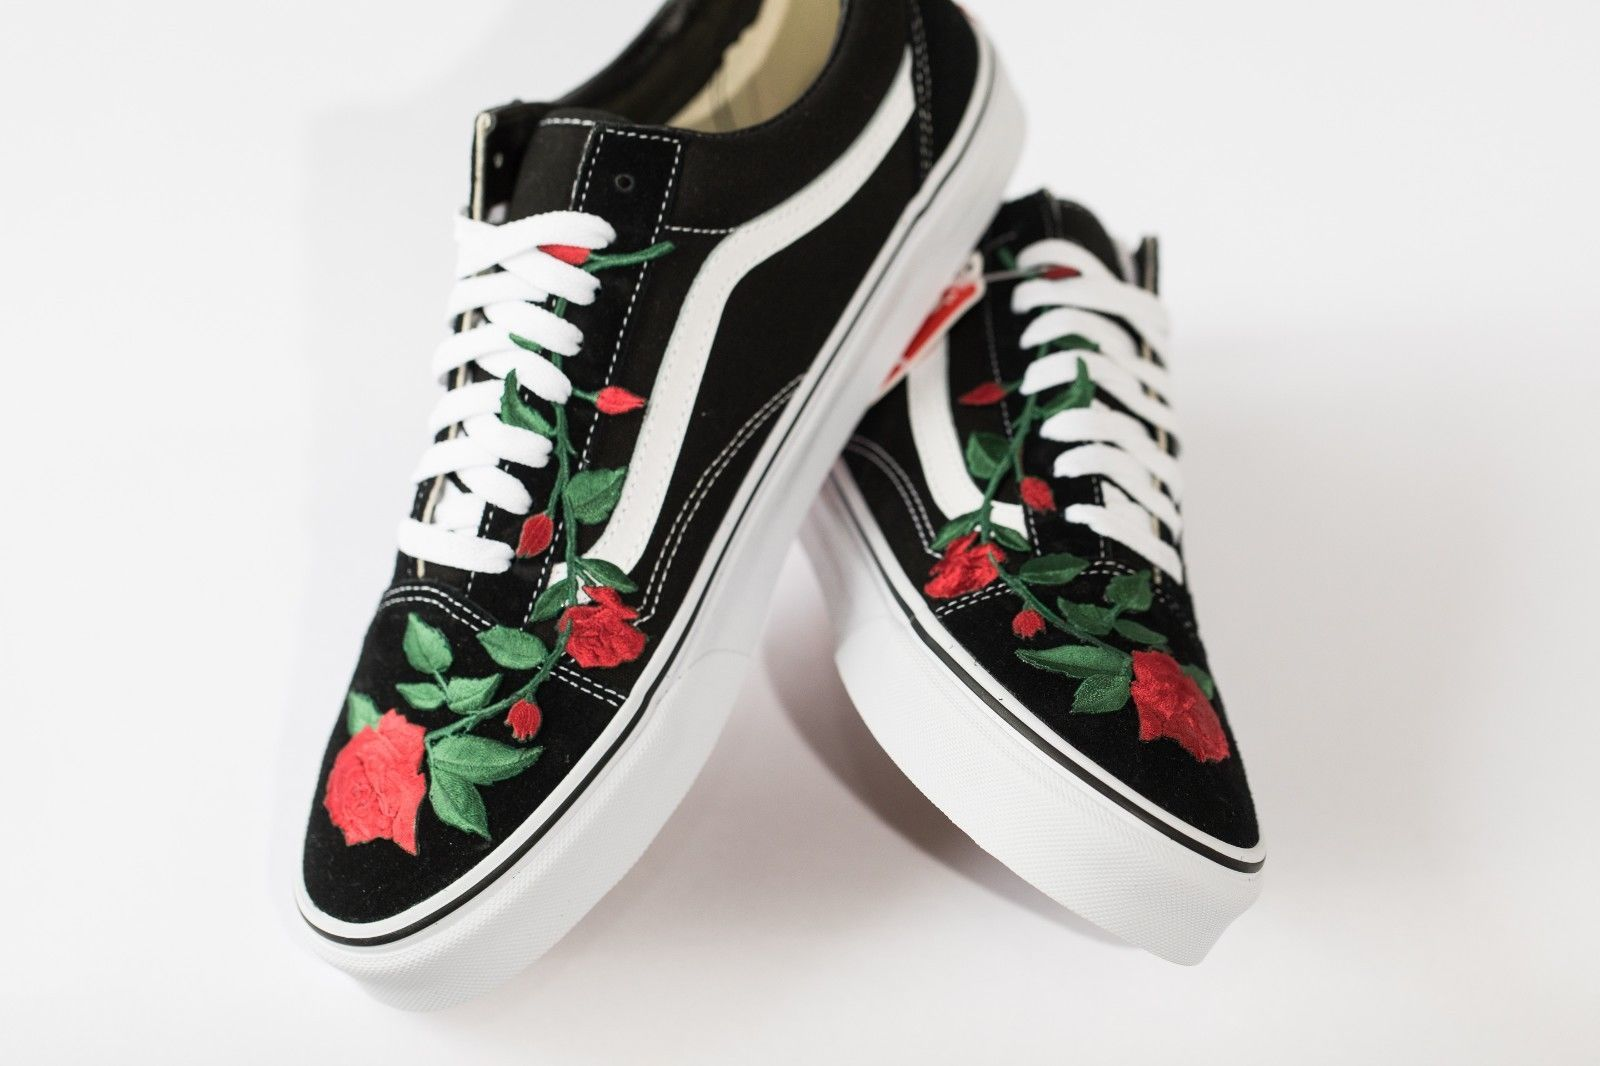 Vans Rose embroidered customs available in all sizes black and white image 7